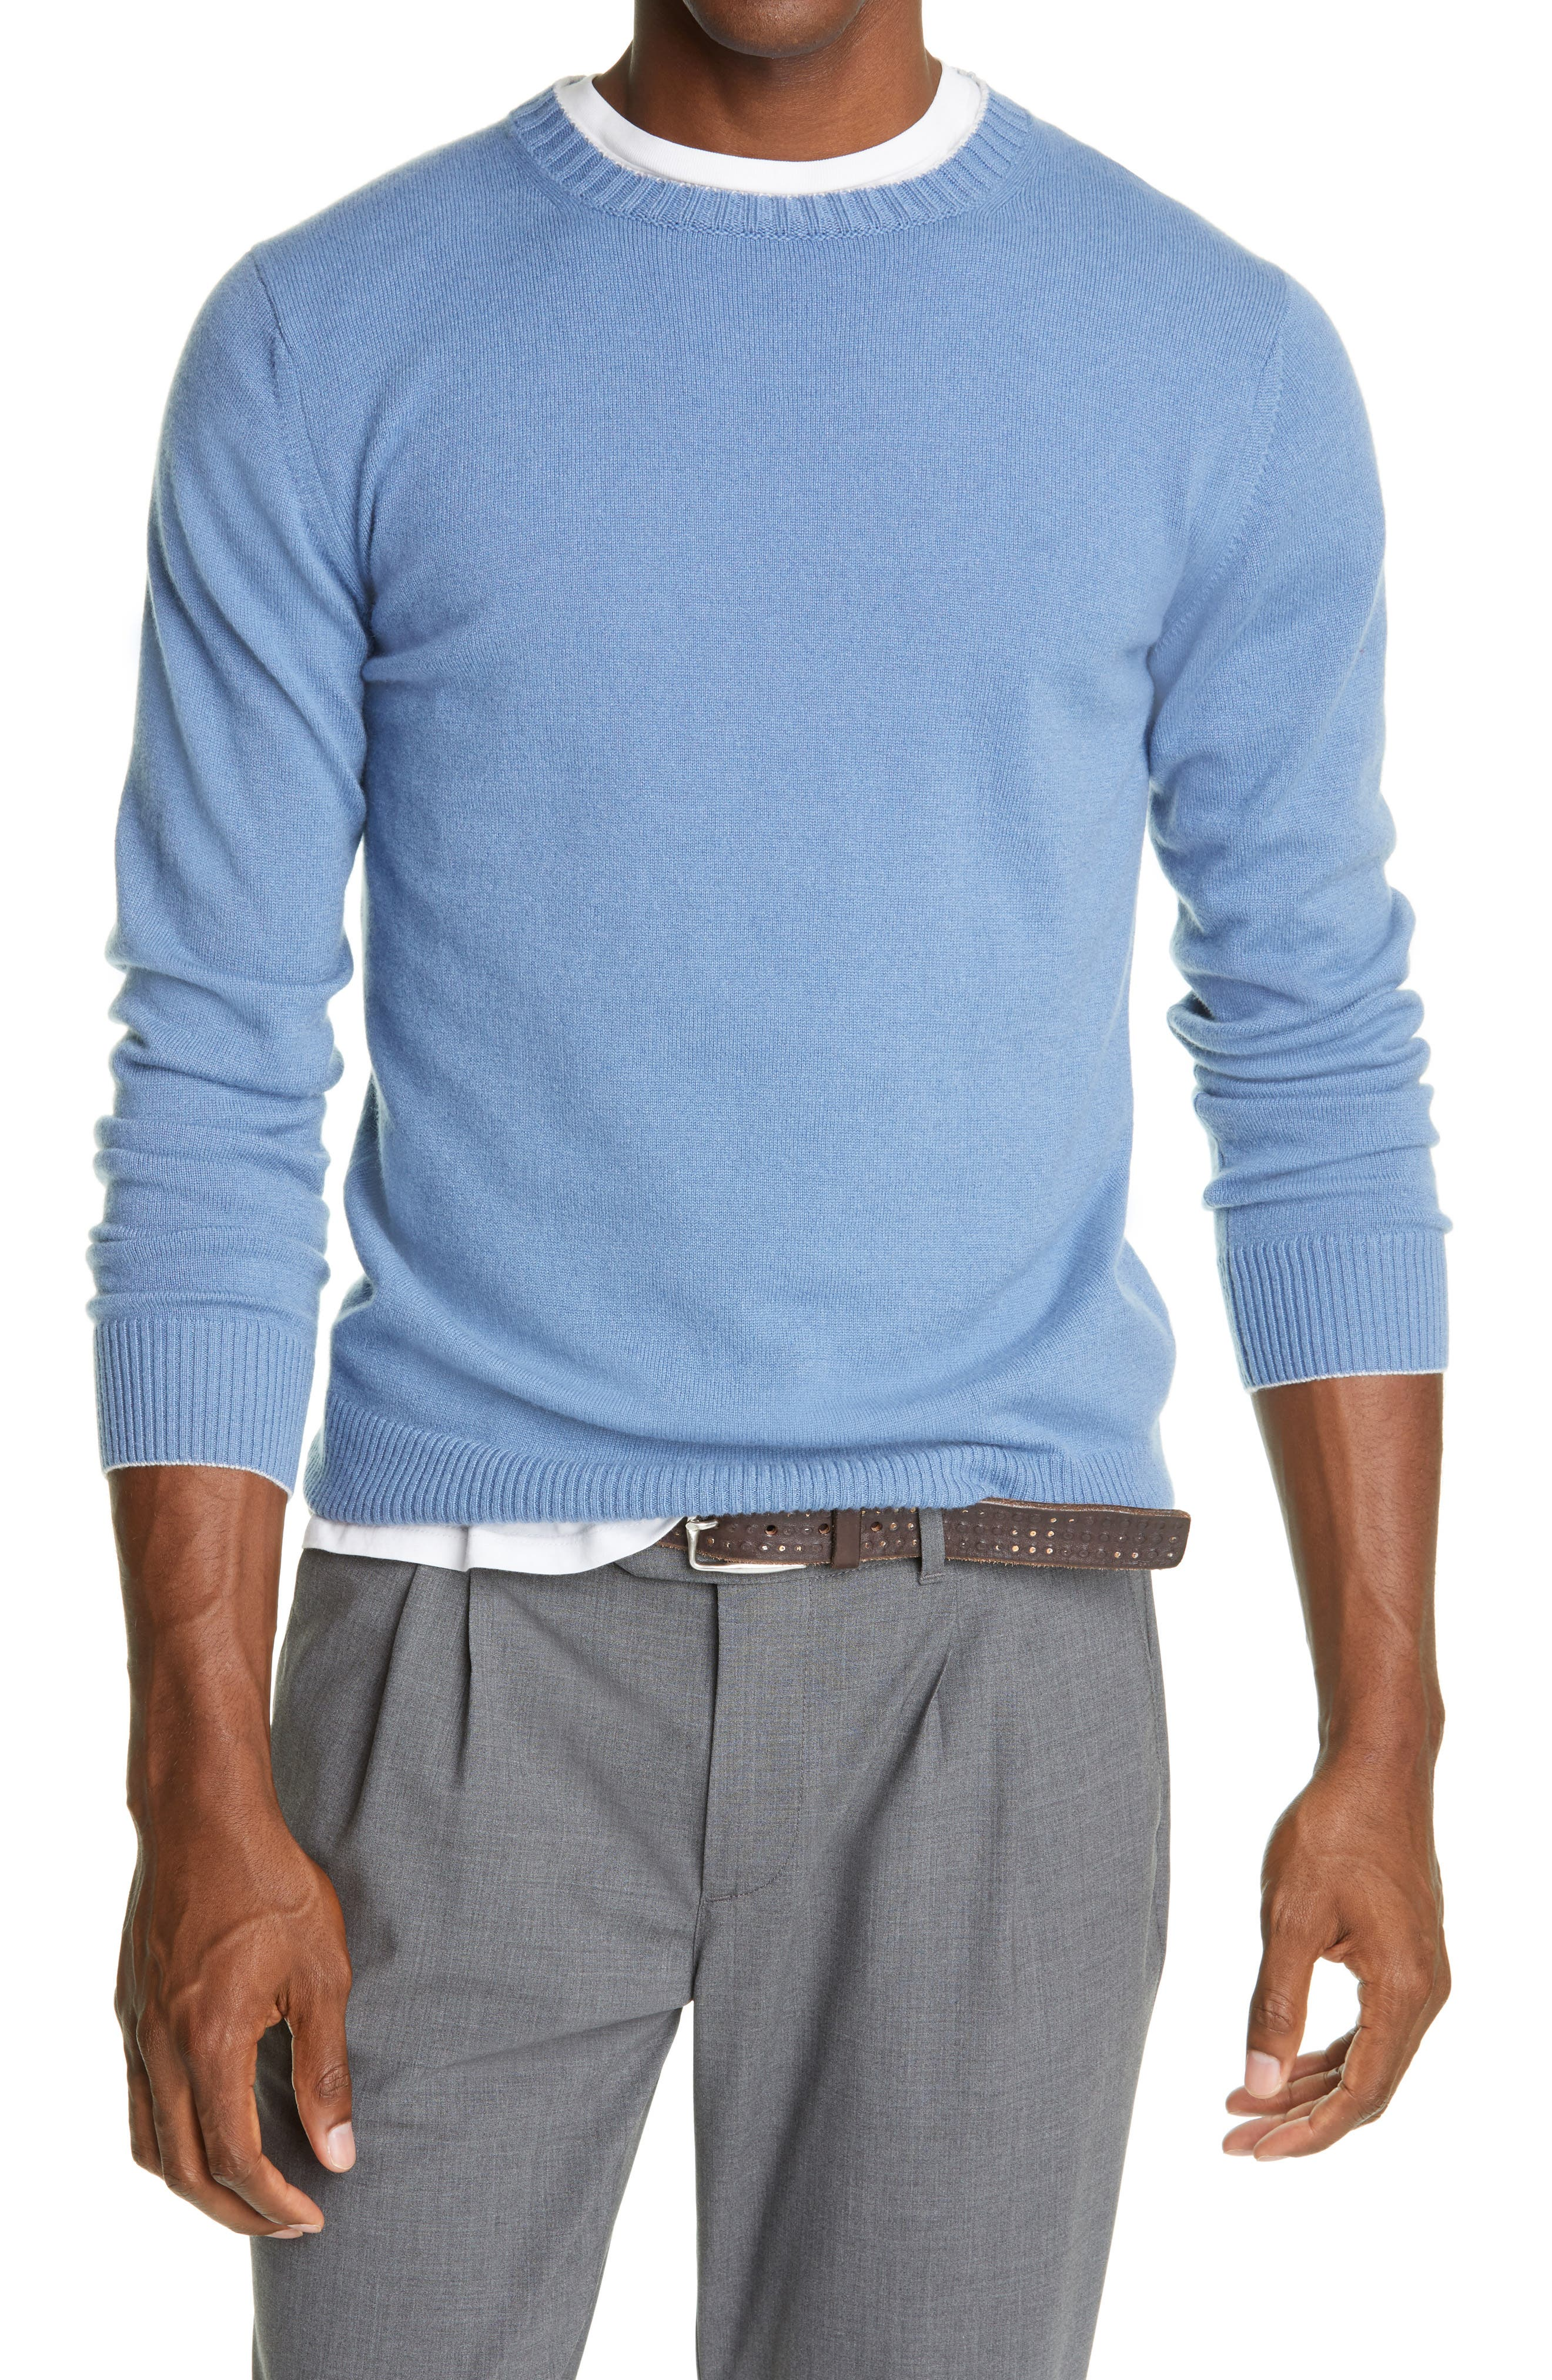 Simple, timeless style defines this sky-blue sweater made from supersoft cashmere. Style Name: Eleventy Cashmere Crewneck Sweater. Style Number: 6078469. Available in stores.